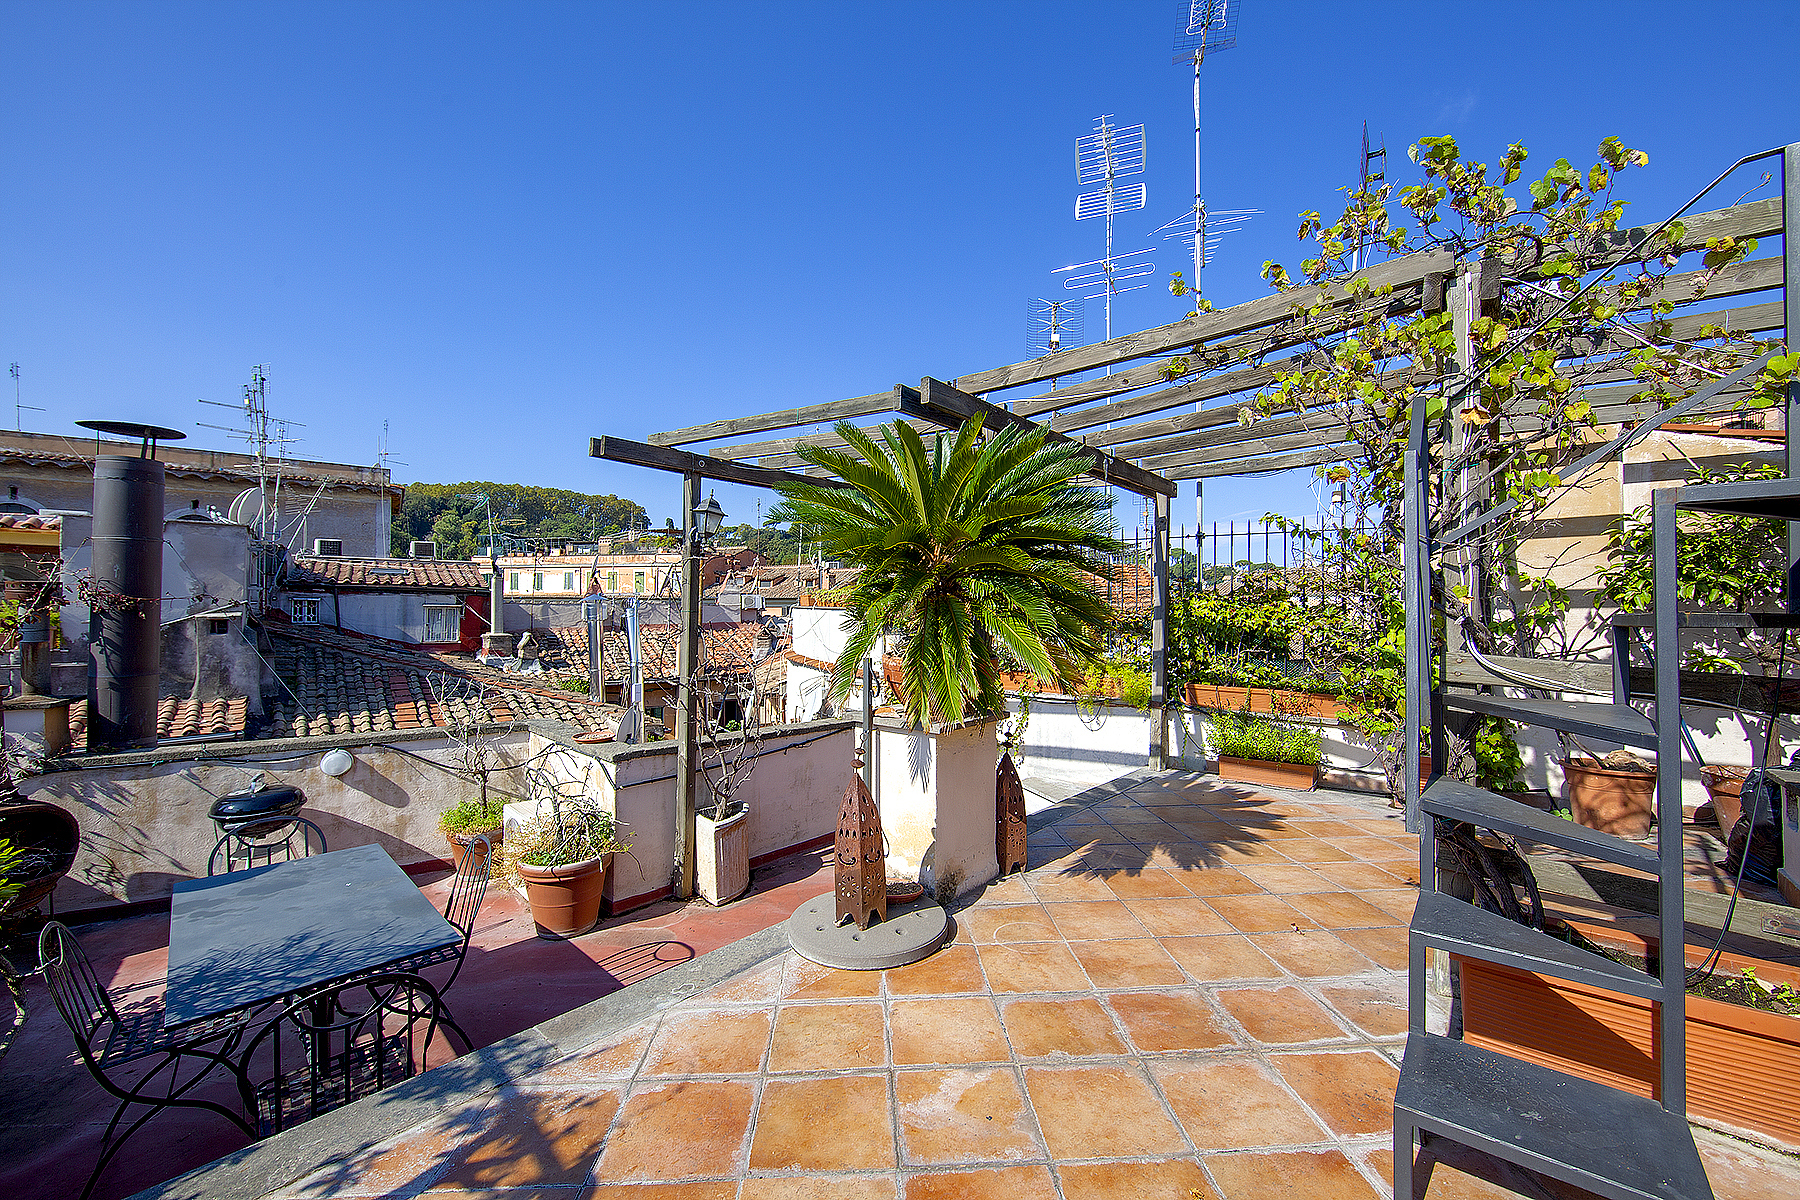 Property for Sale at Attic with amazing terrace and breathtaking view Rome, Rome Italy